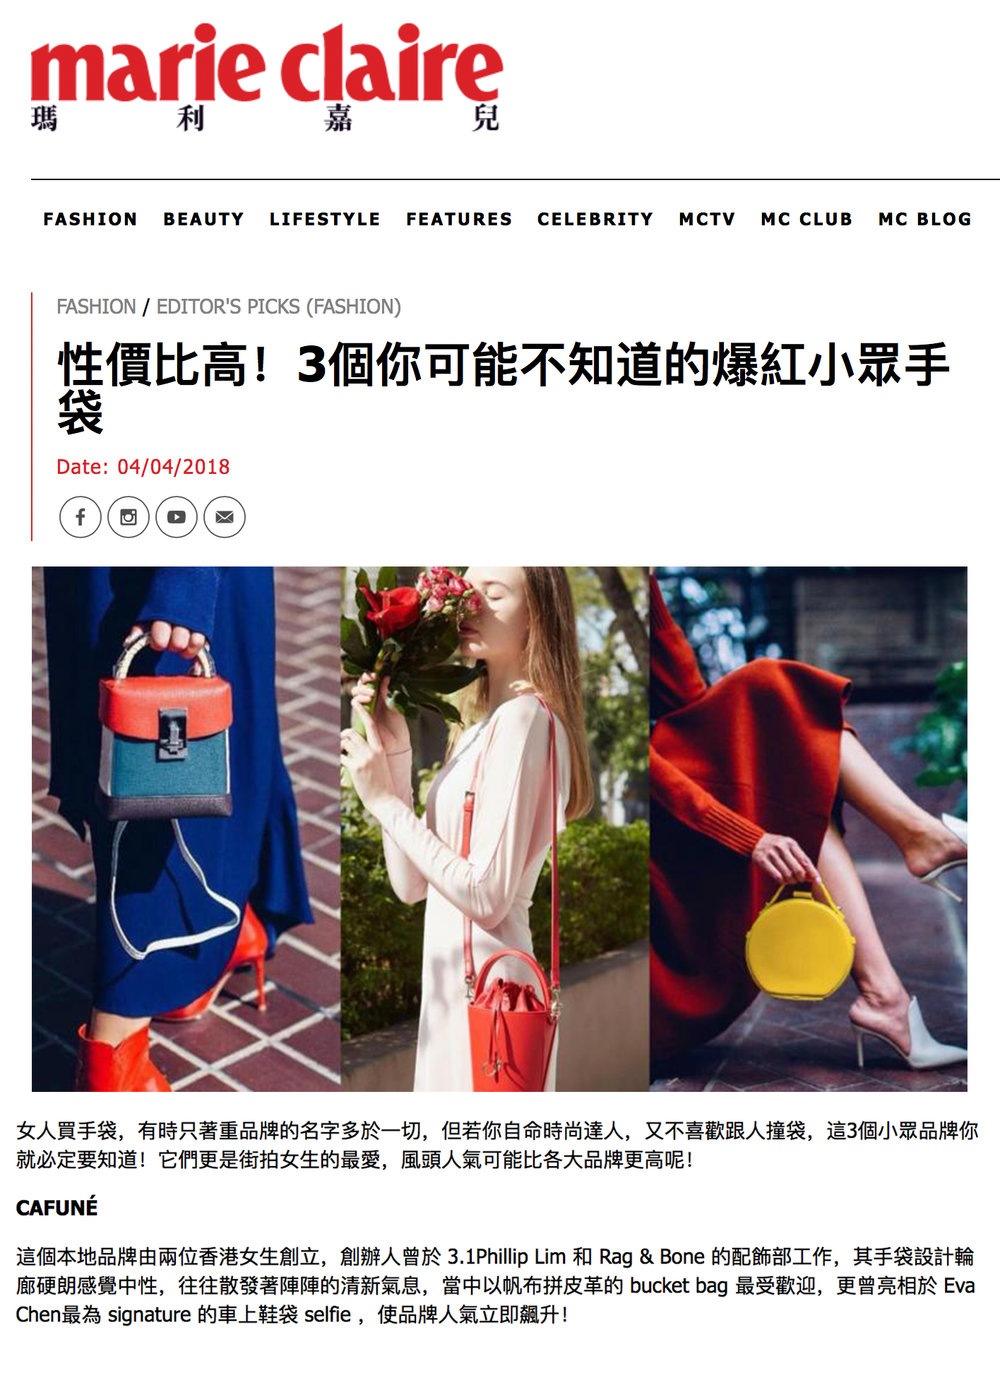 18-04-2018 Affordable luxury   Thank you Marie Claire HK for the special mention! Cafuné offers an affordable range of handbags in modern design with luxurious quality.